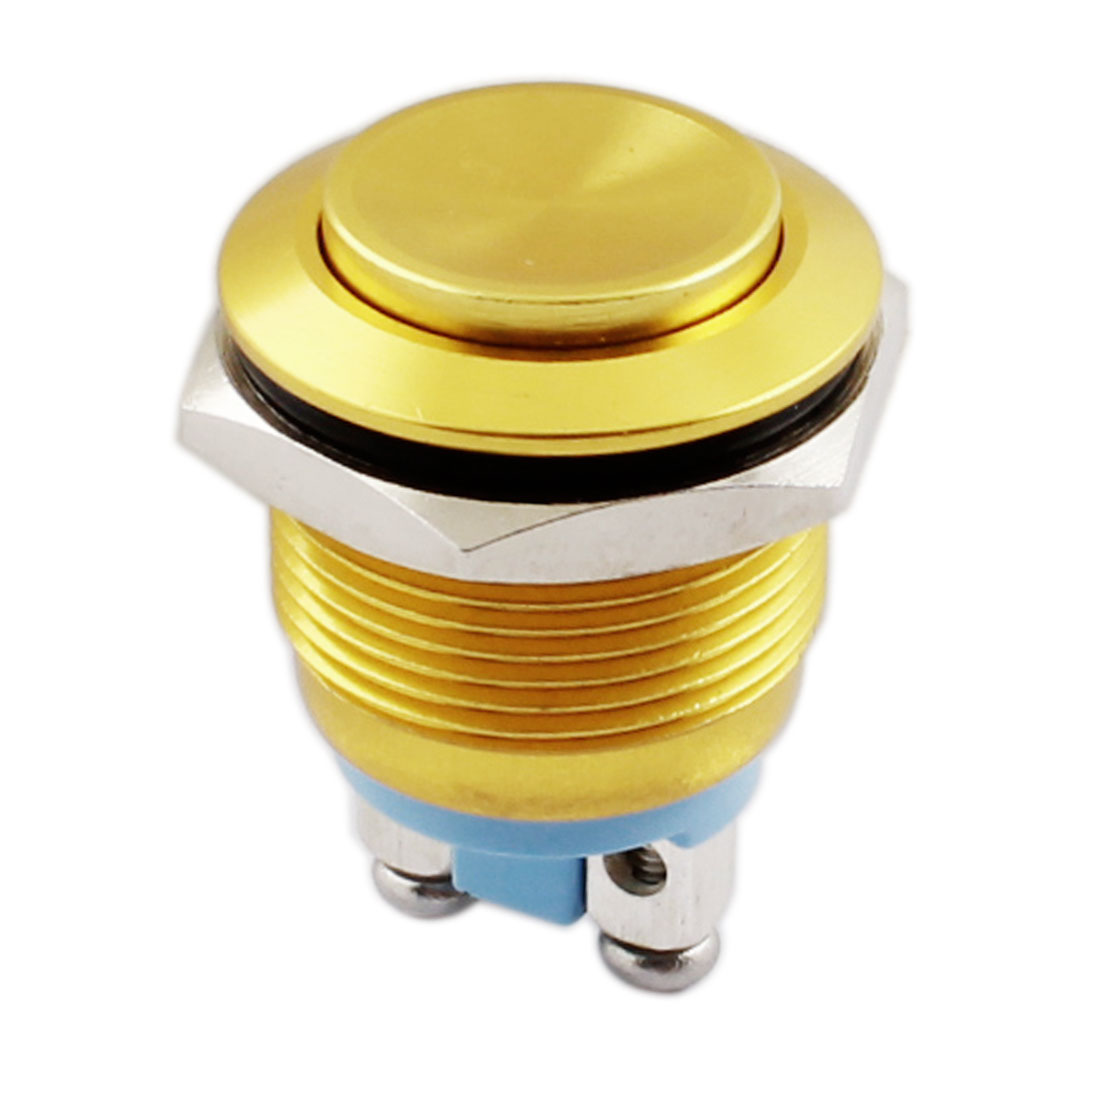 AC250V 5A 19mm Thread Panel Mount SPST 2 Terminals NO Momentary Metal Pushbutton Switch Gold Tone